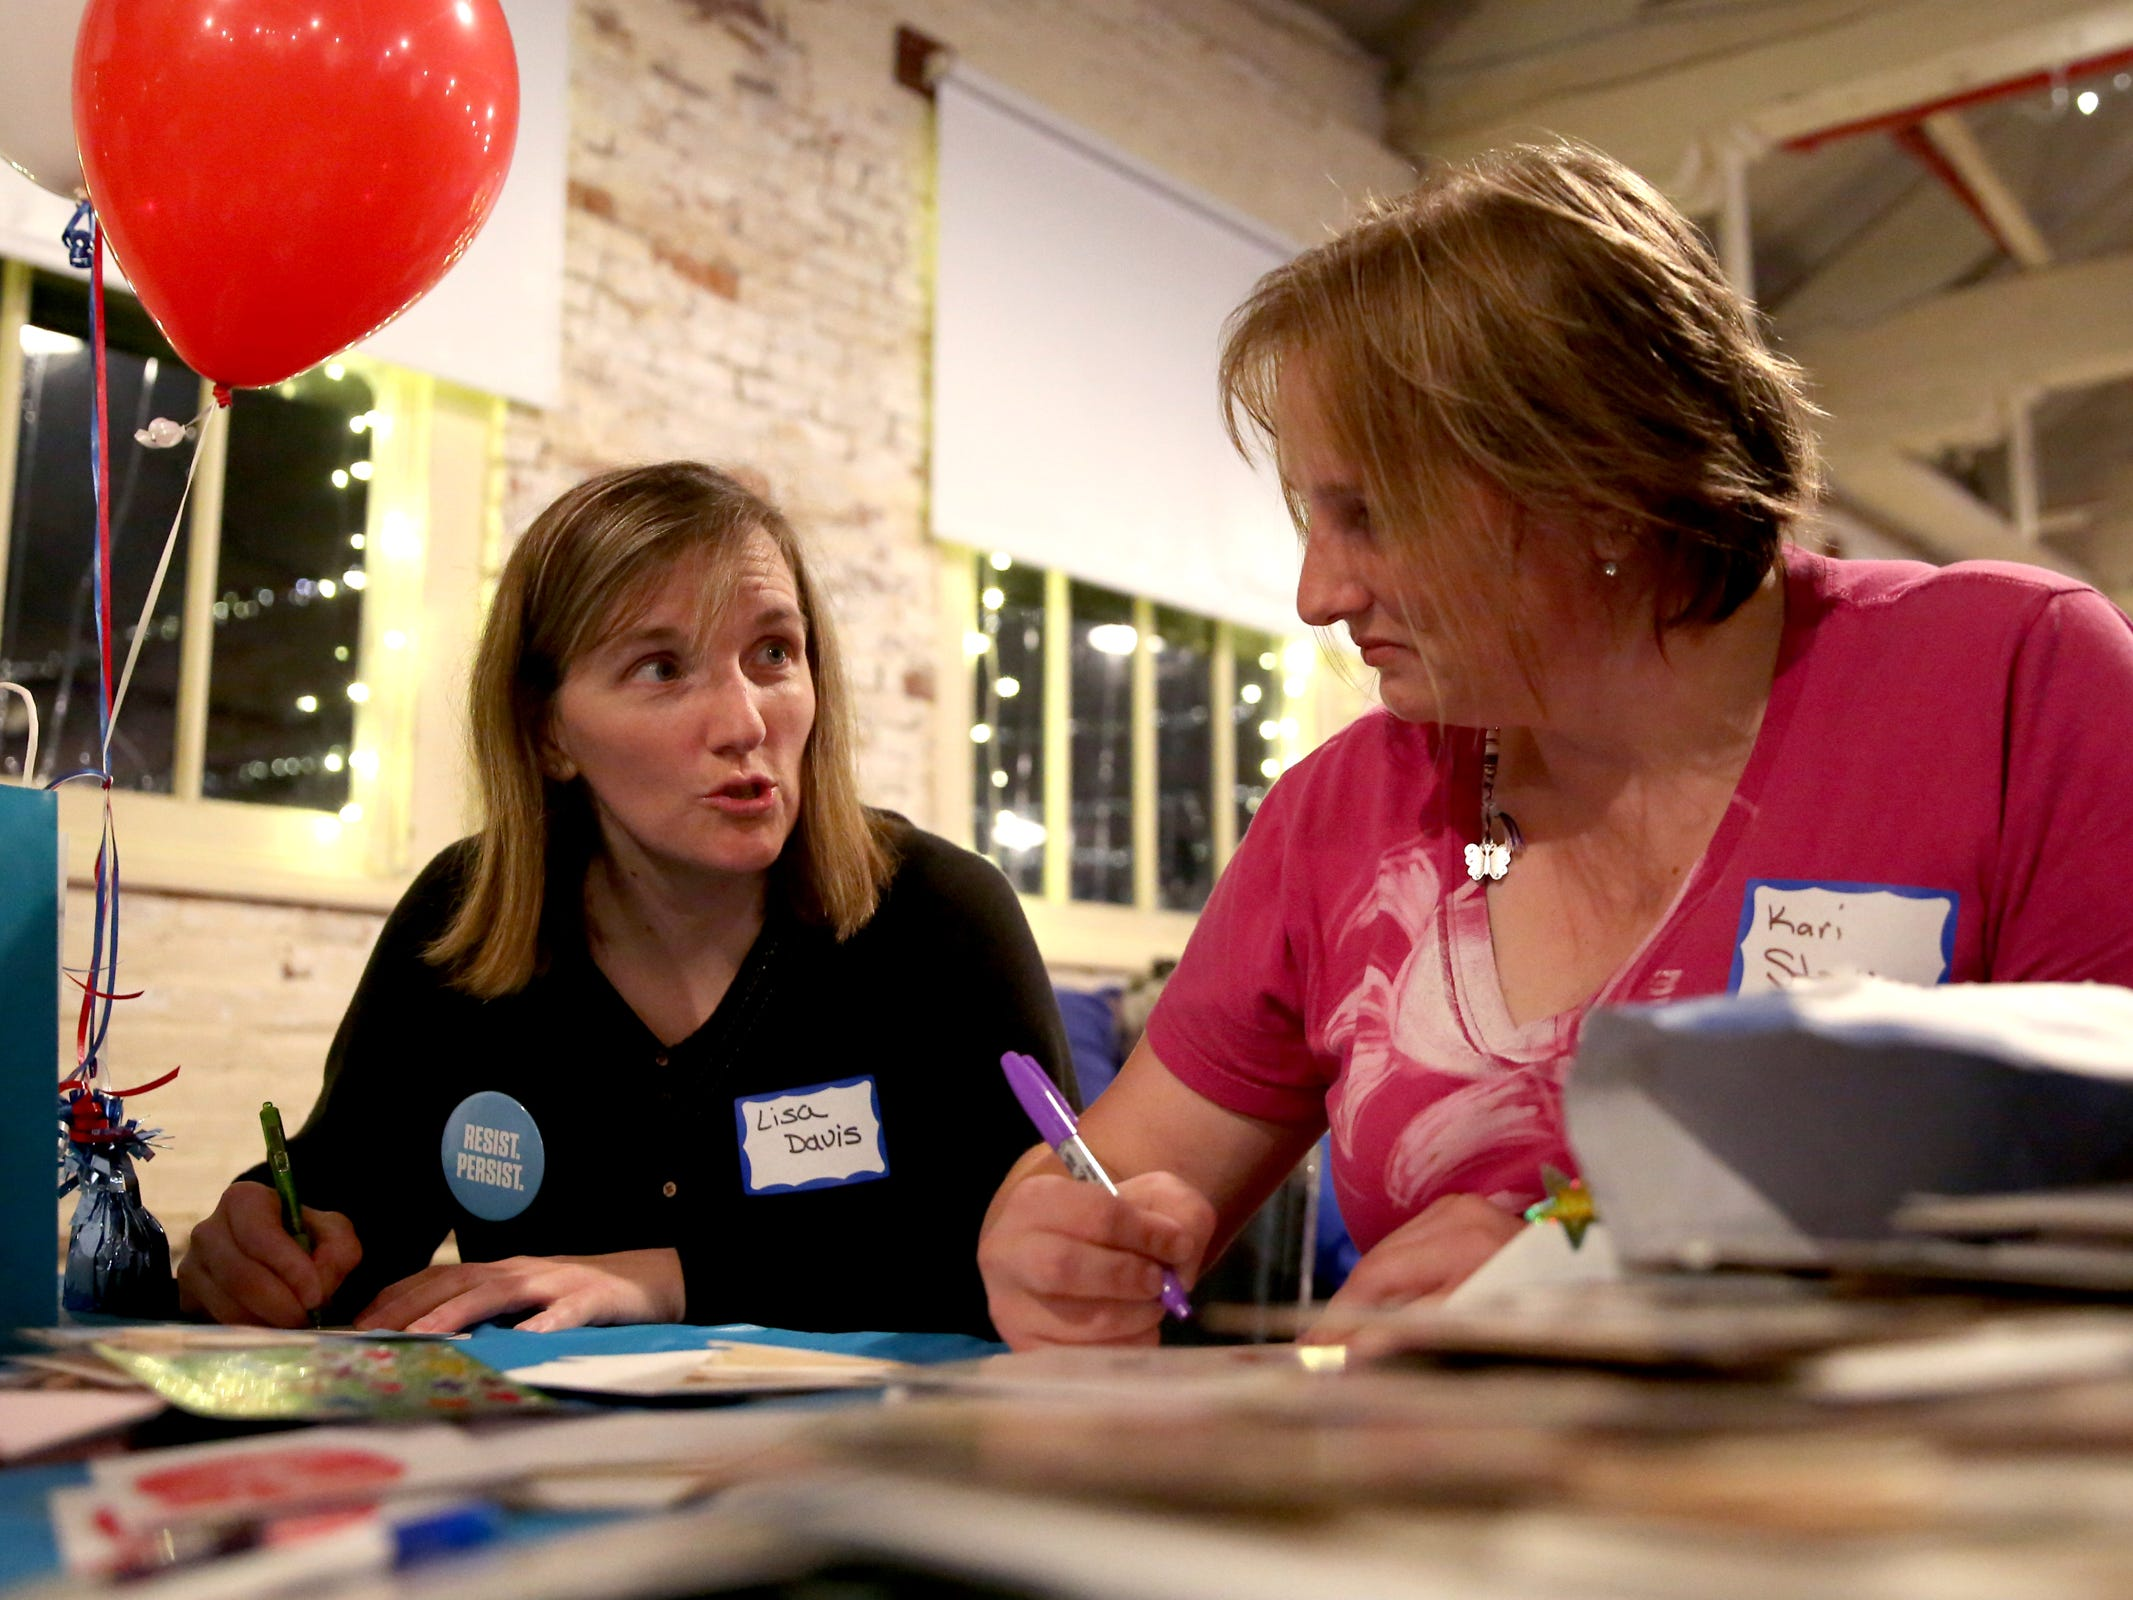 Lisa Davis, left, of Keizer, and Kari Stocks, of Salem, write thank you notes to candidates during an election night party hosted by Marion County Democrats and Polk County Democrats at the Willamette Heritage Center in Salem on Tuesday, Nov. 6, 2018.